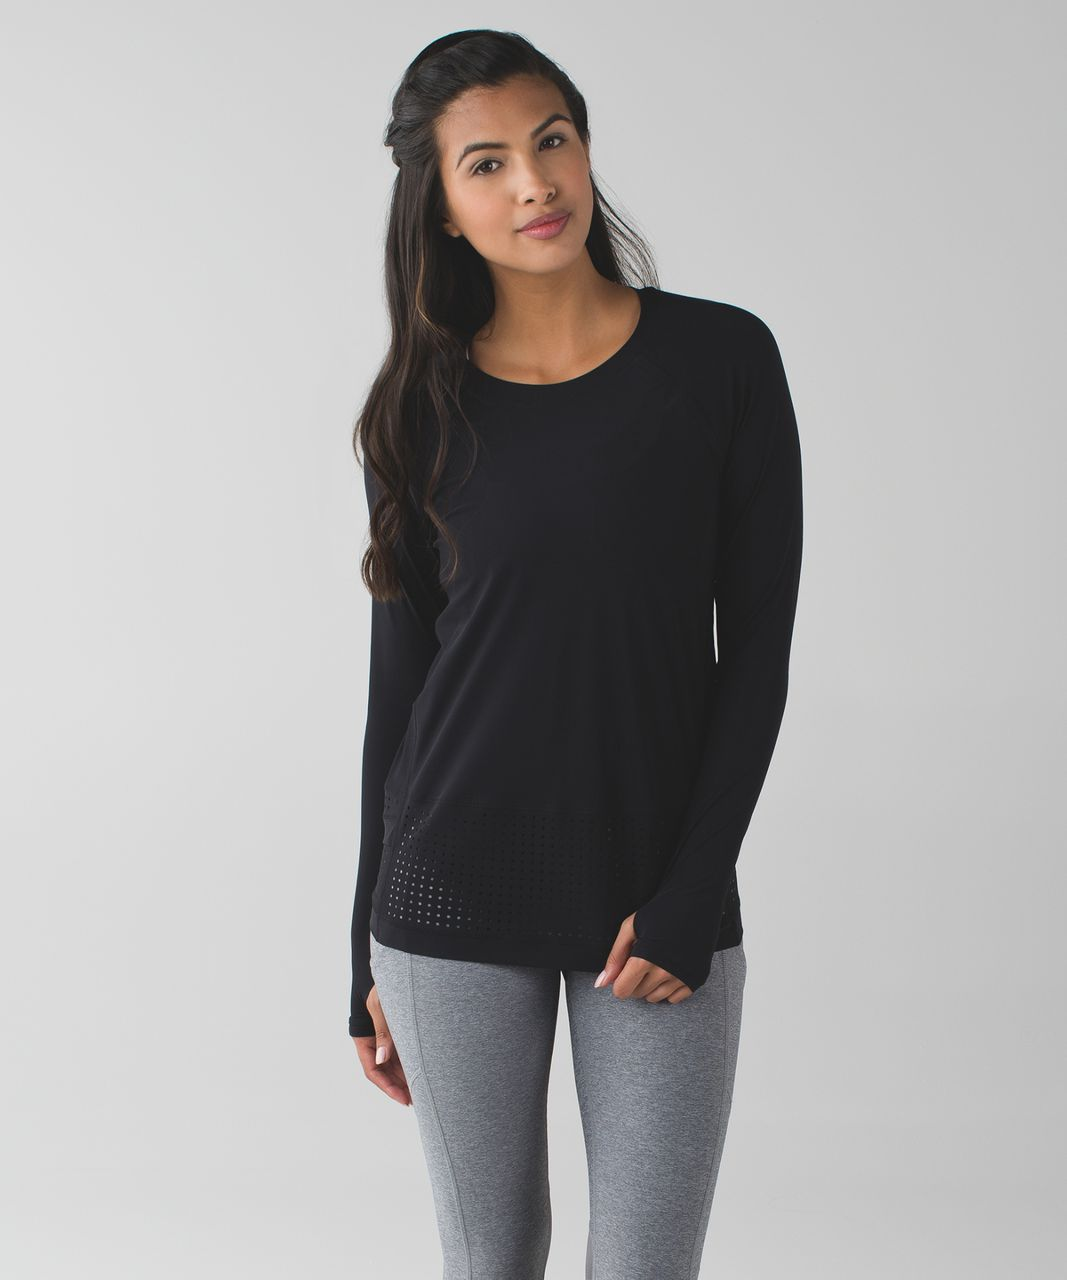 Lululemon Vent It Long Sleeve - Black